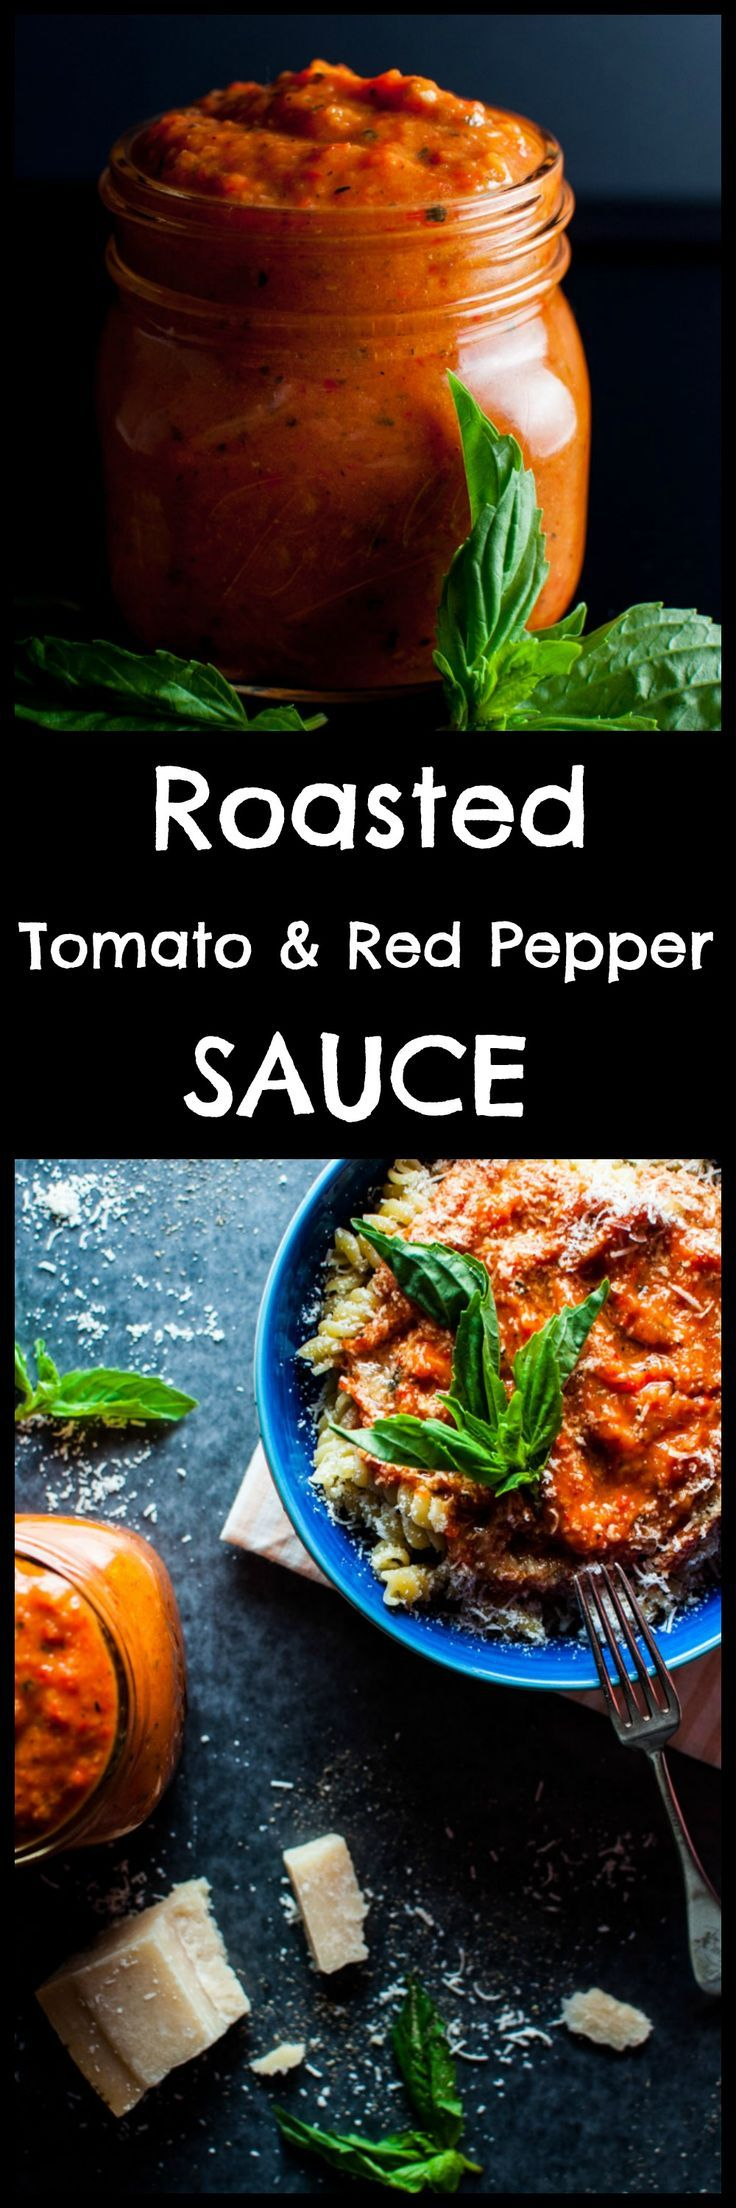 Roasted tomato and red pepper sauce – a versatile sauce that is simple to make, super flavorful, and can be used on pasta, pizza, or anywhere a tomato-based sauce is needed.